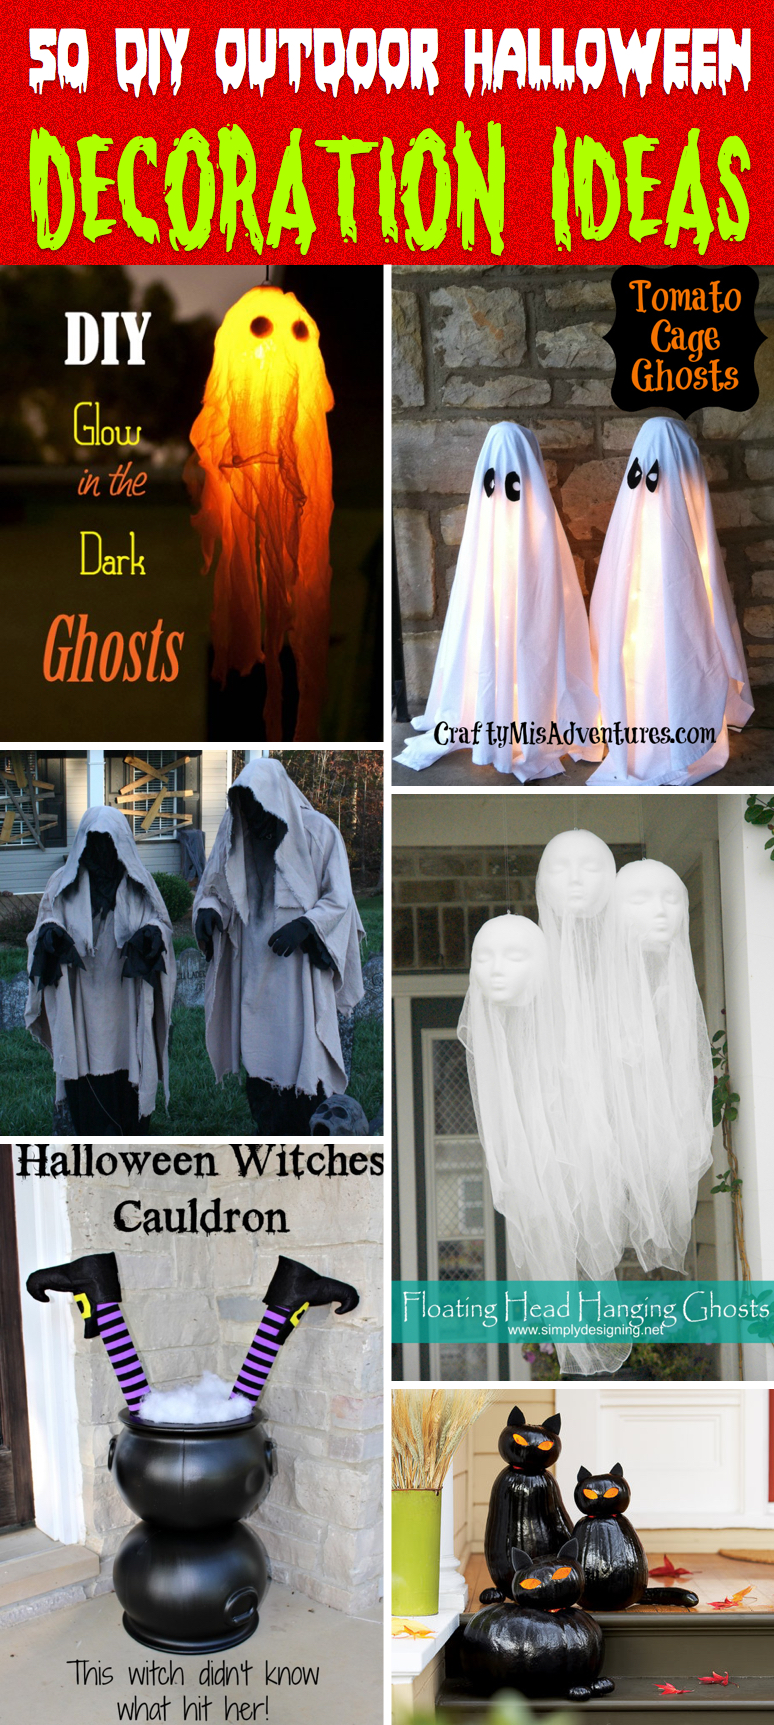 Outdoor halloween decorations 2014 - 50 Astounding But Easy Diy Outdoor Halloween Decoration Ideas